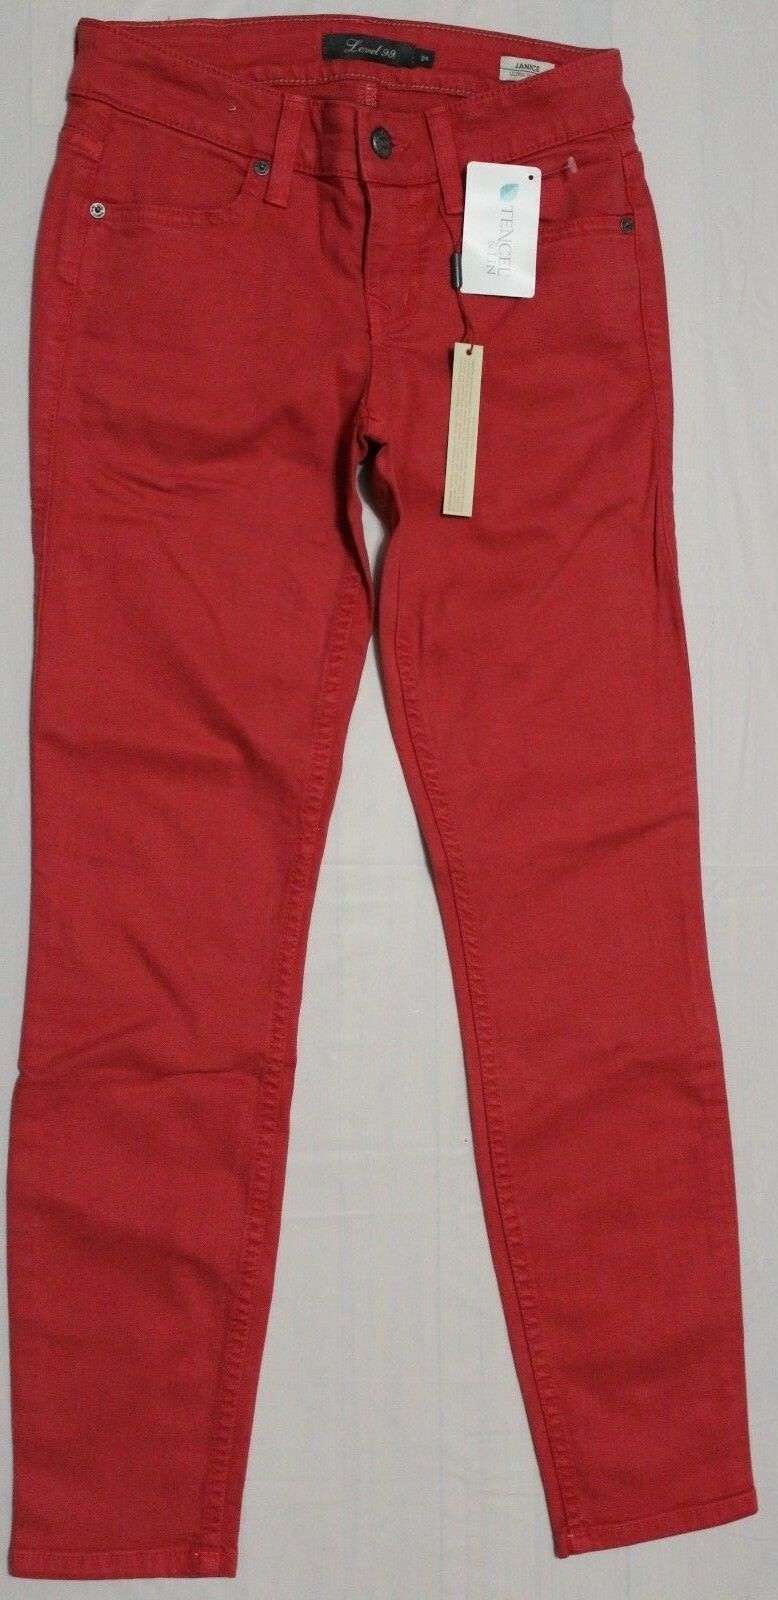 LEVEL 99 JANICE SHERBET ULTRA SKINNY JEANS US 24